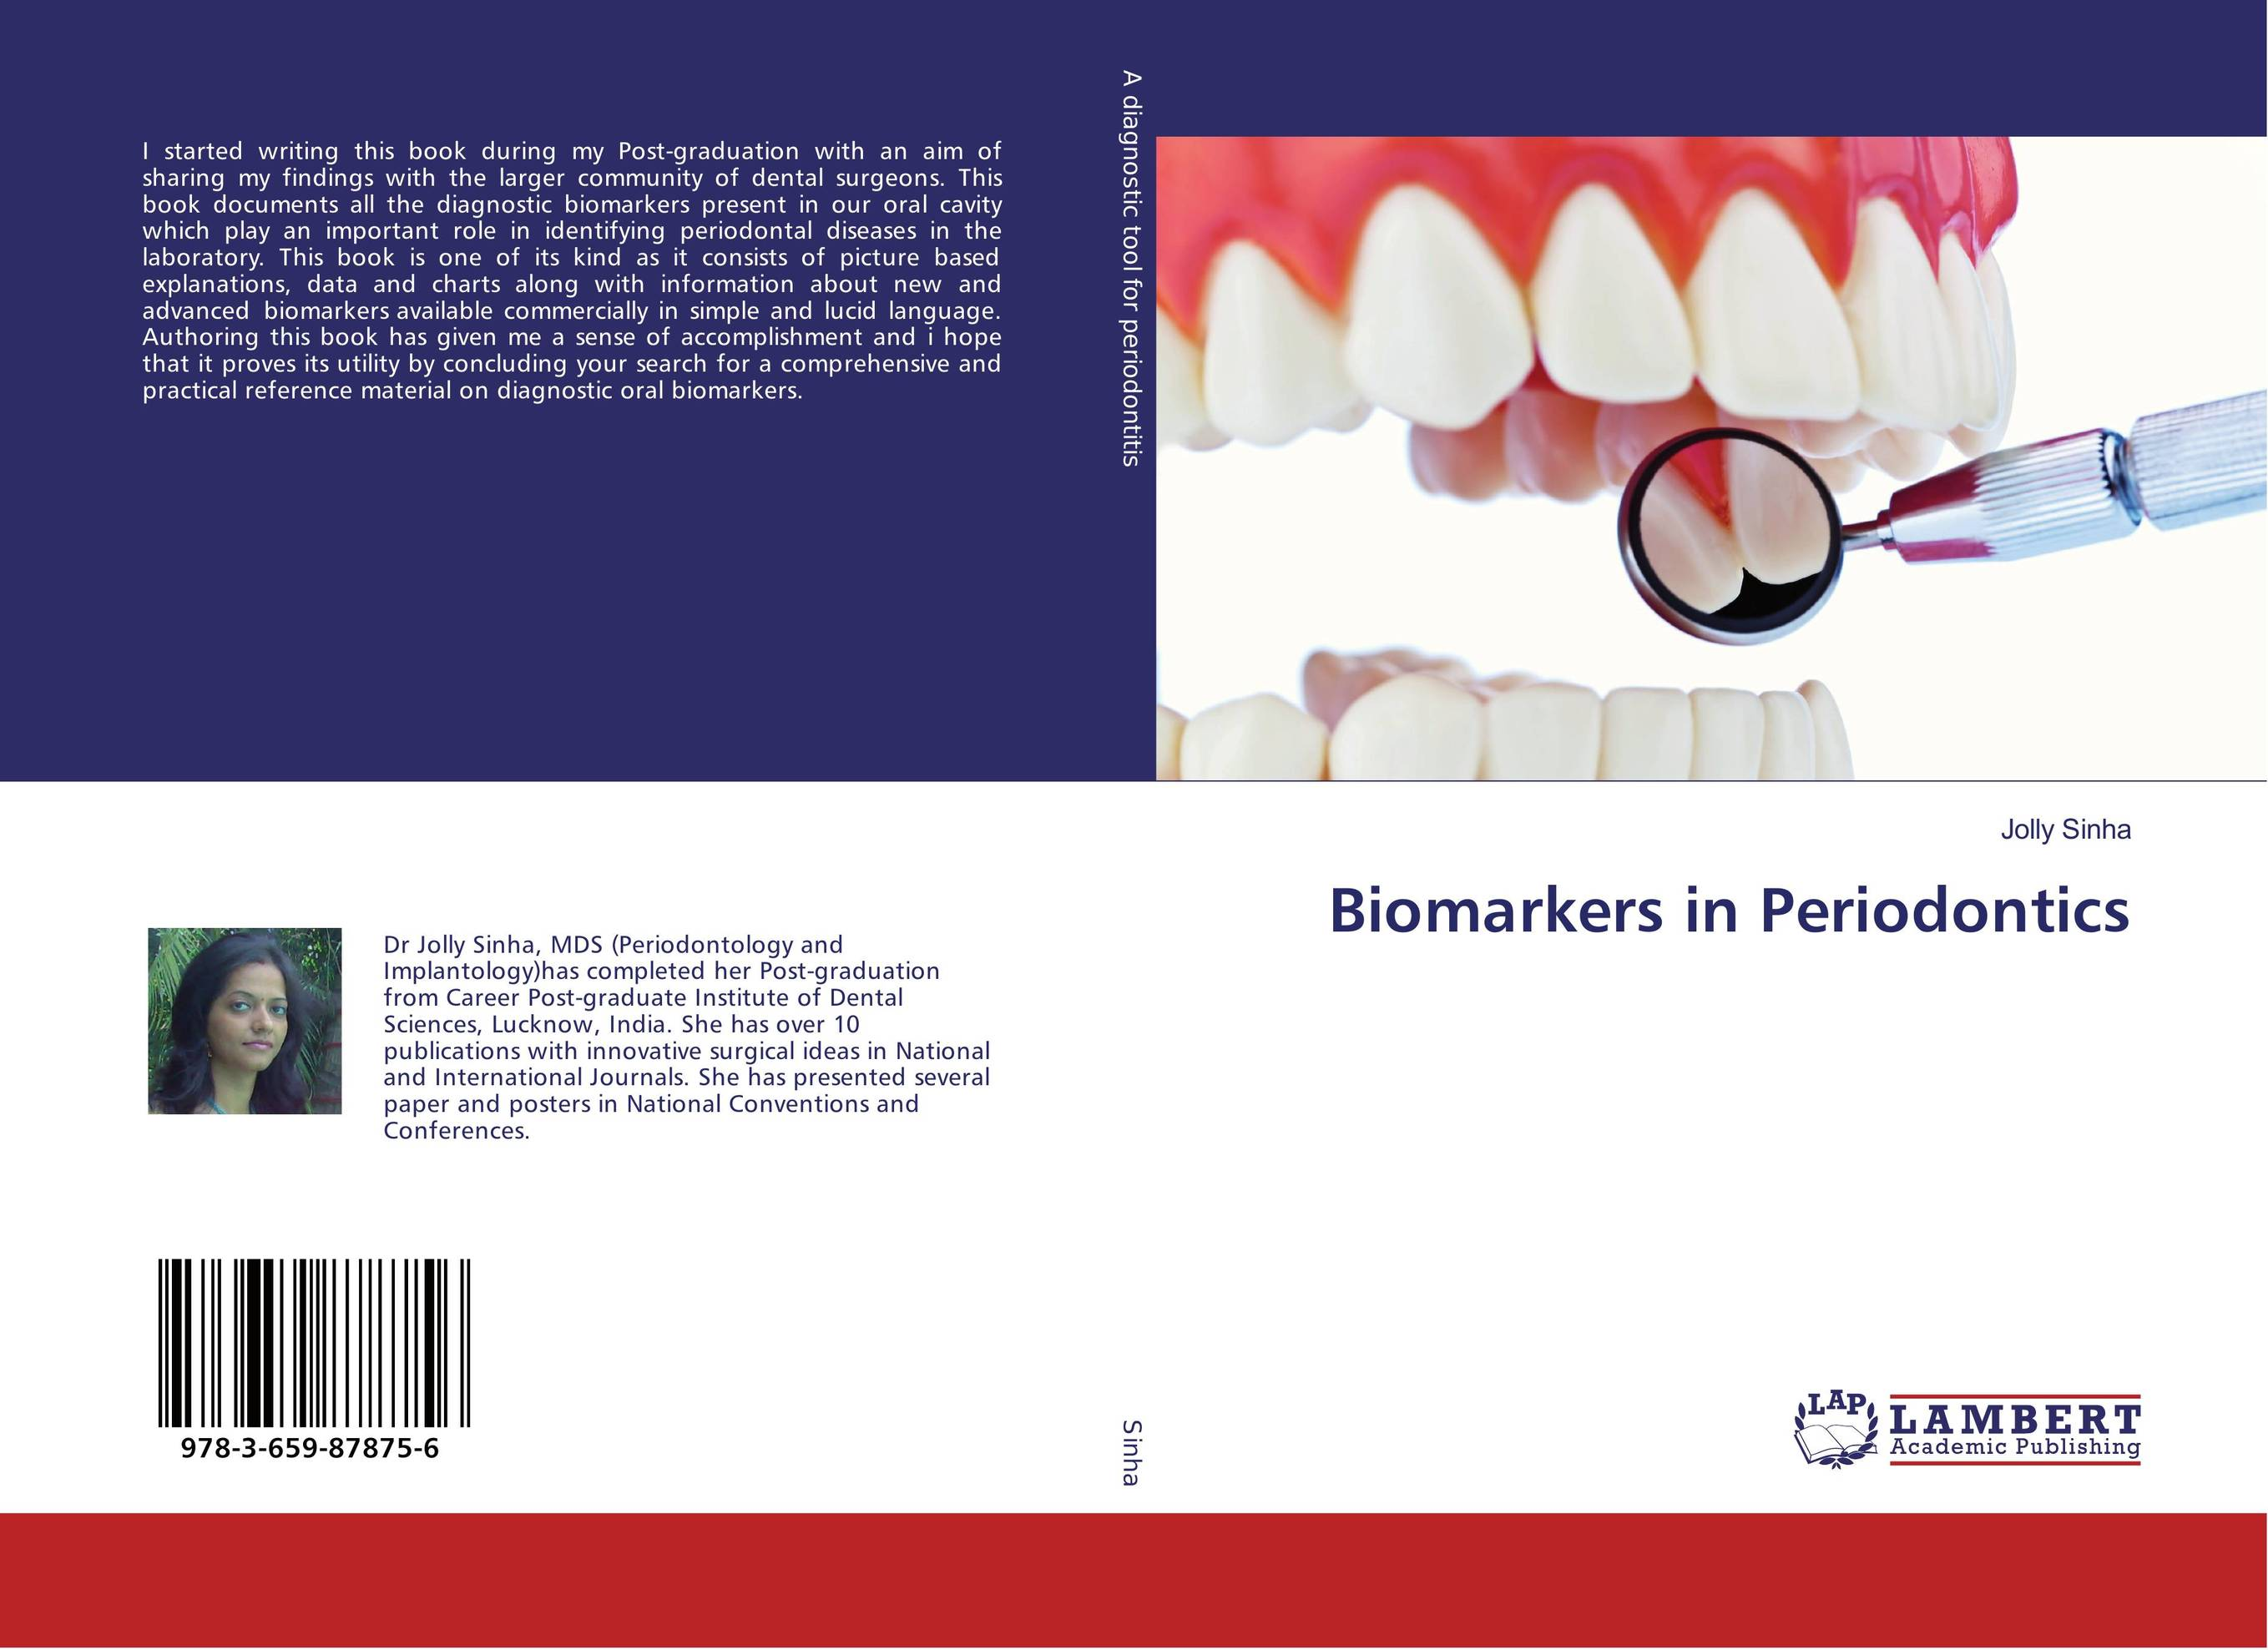 Biomarkers in Periodontics biomarkers in ulcerative colitis